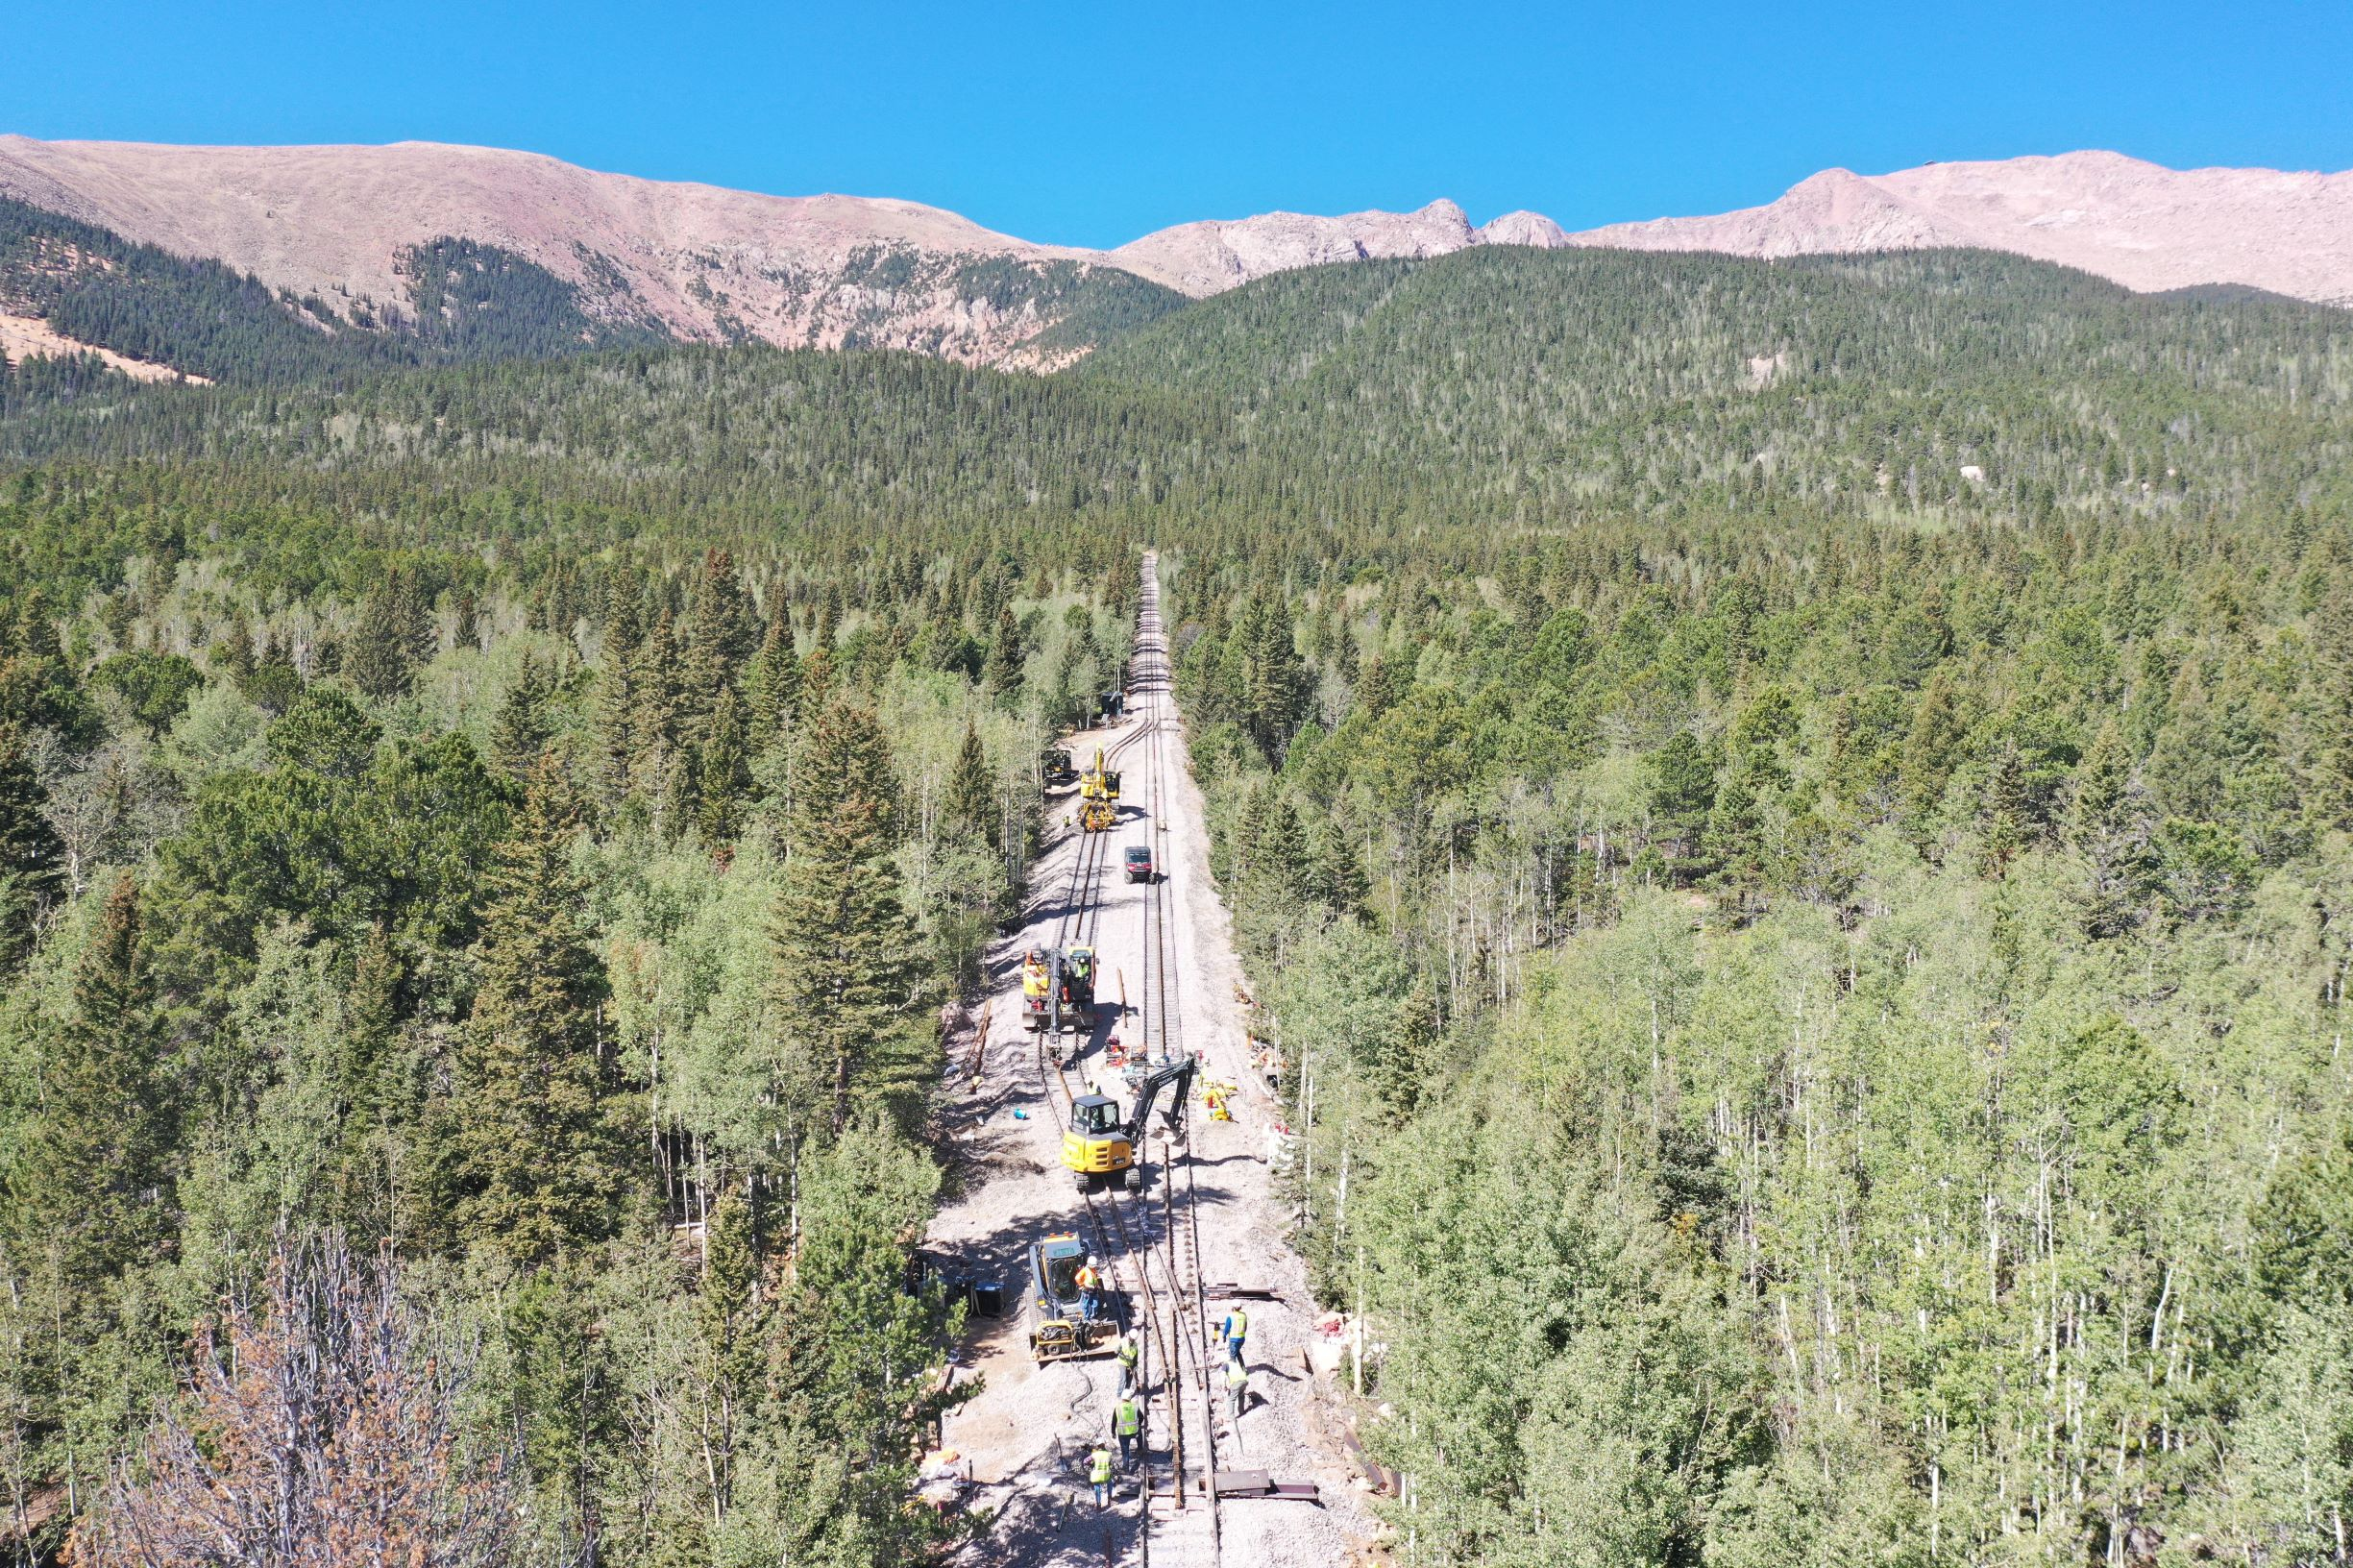 Track renovations on The Broadmoor Manitou and Pikes Peak Cog Railway